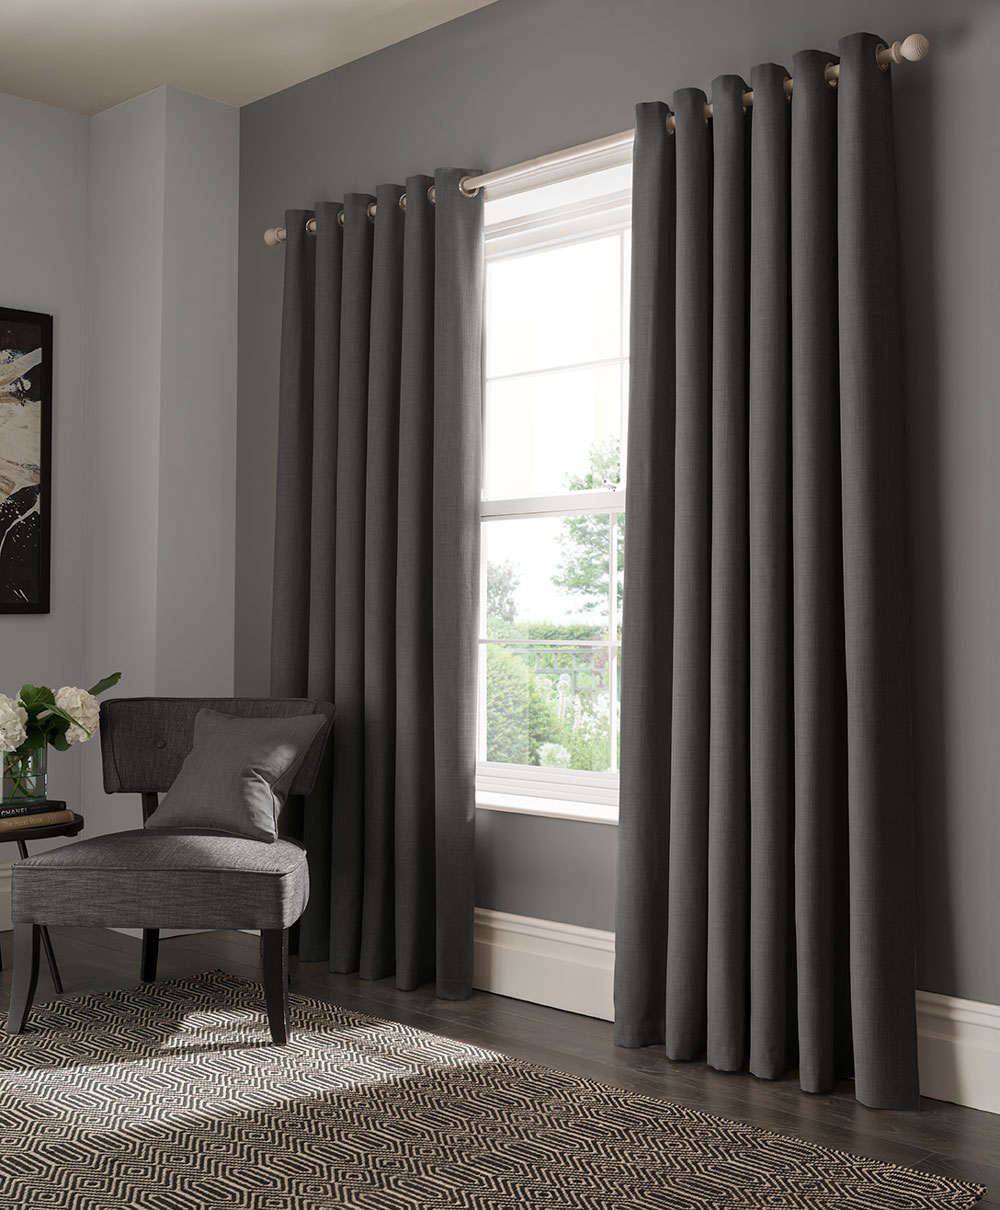 Studio G Elba Eyelet Curtains Steel Ready Made Curtains - Product code: M1104/04/90X7